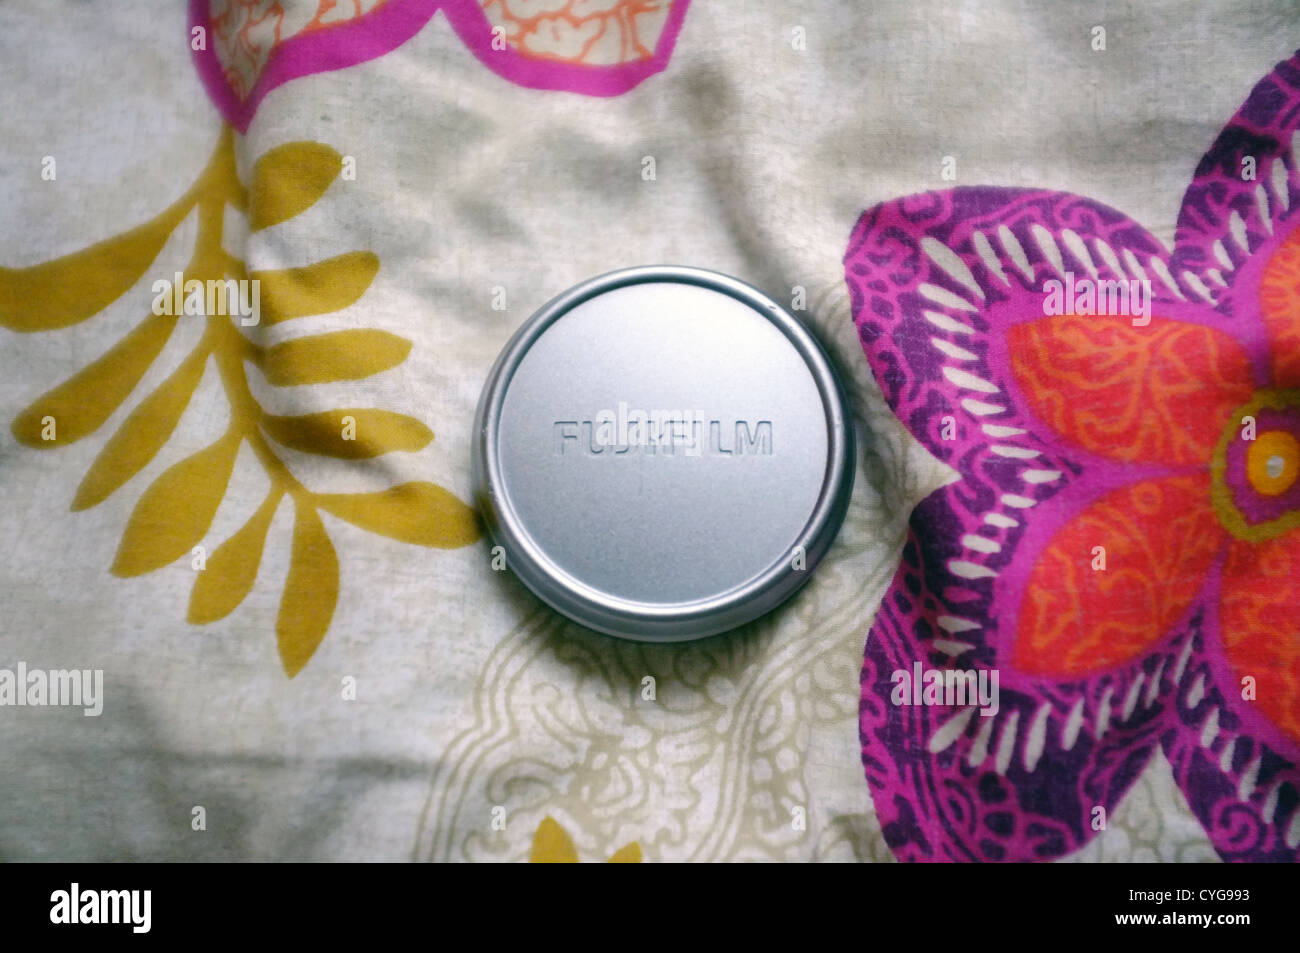 Fujifilm silver lens cap on a patterned background. - Stock Image